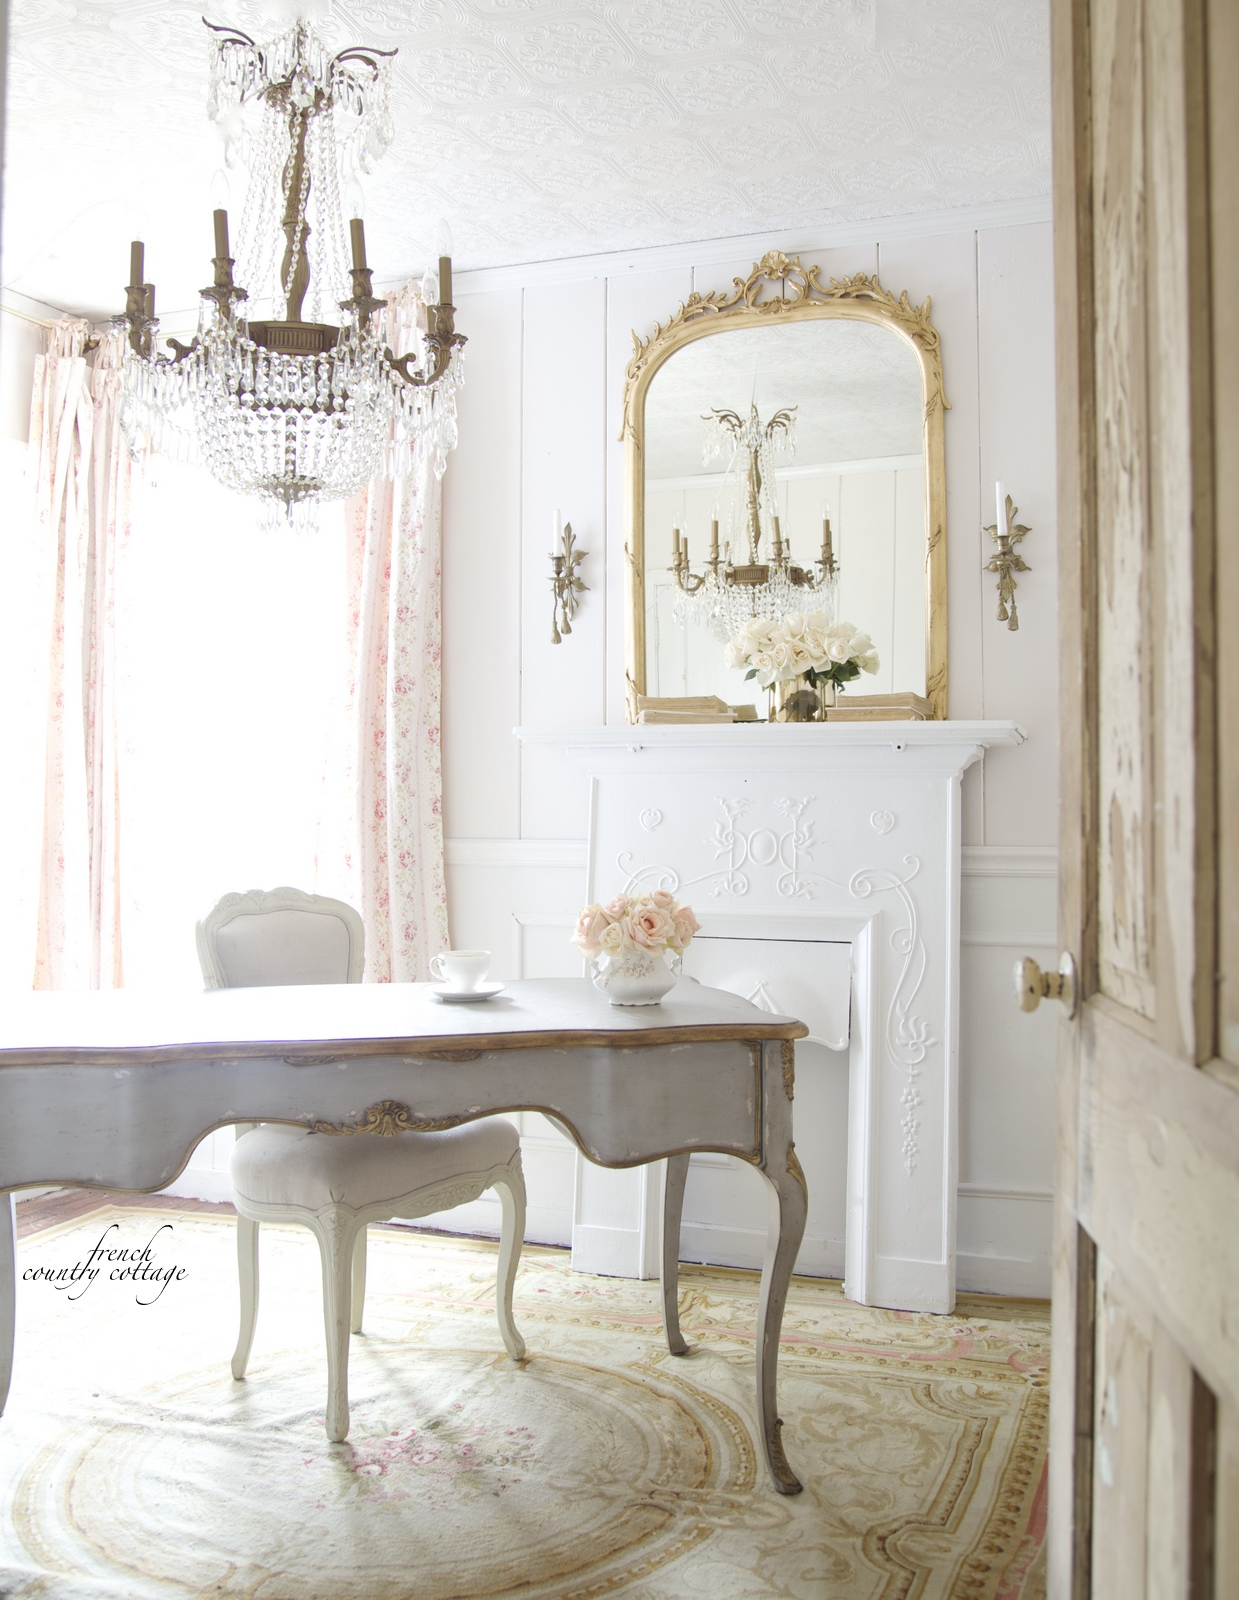 French Style Office - FRENCH COUNTRY COTTAGE